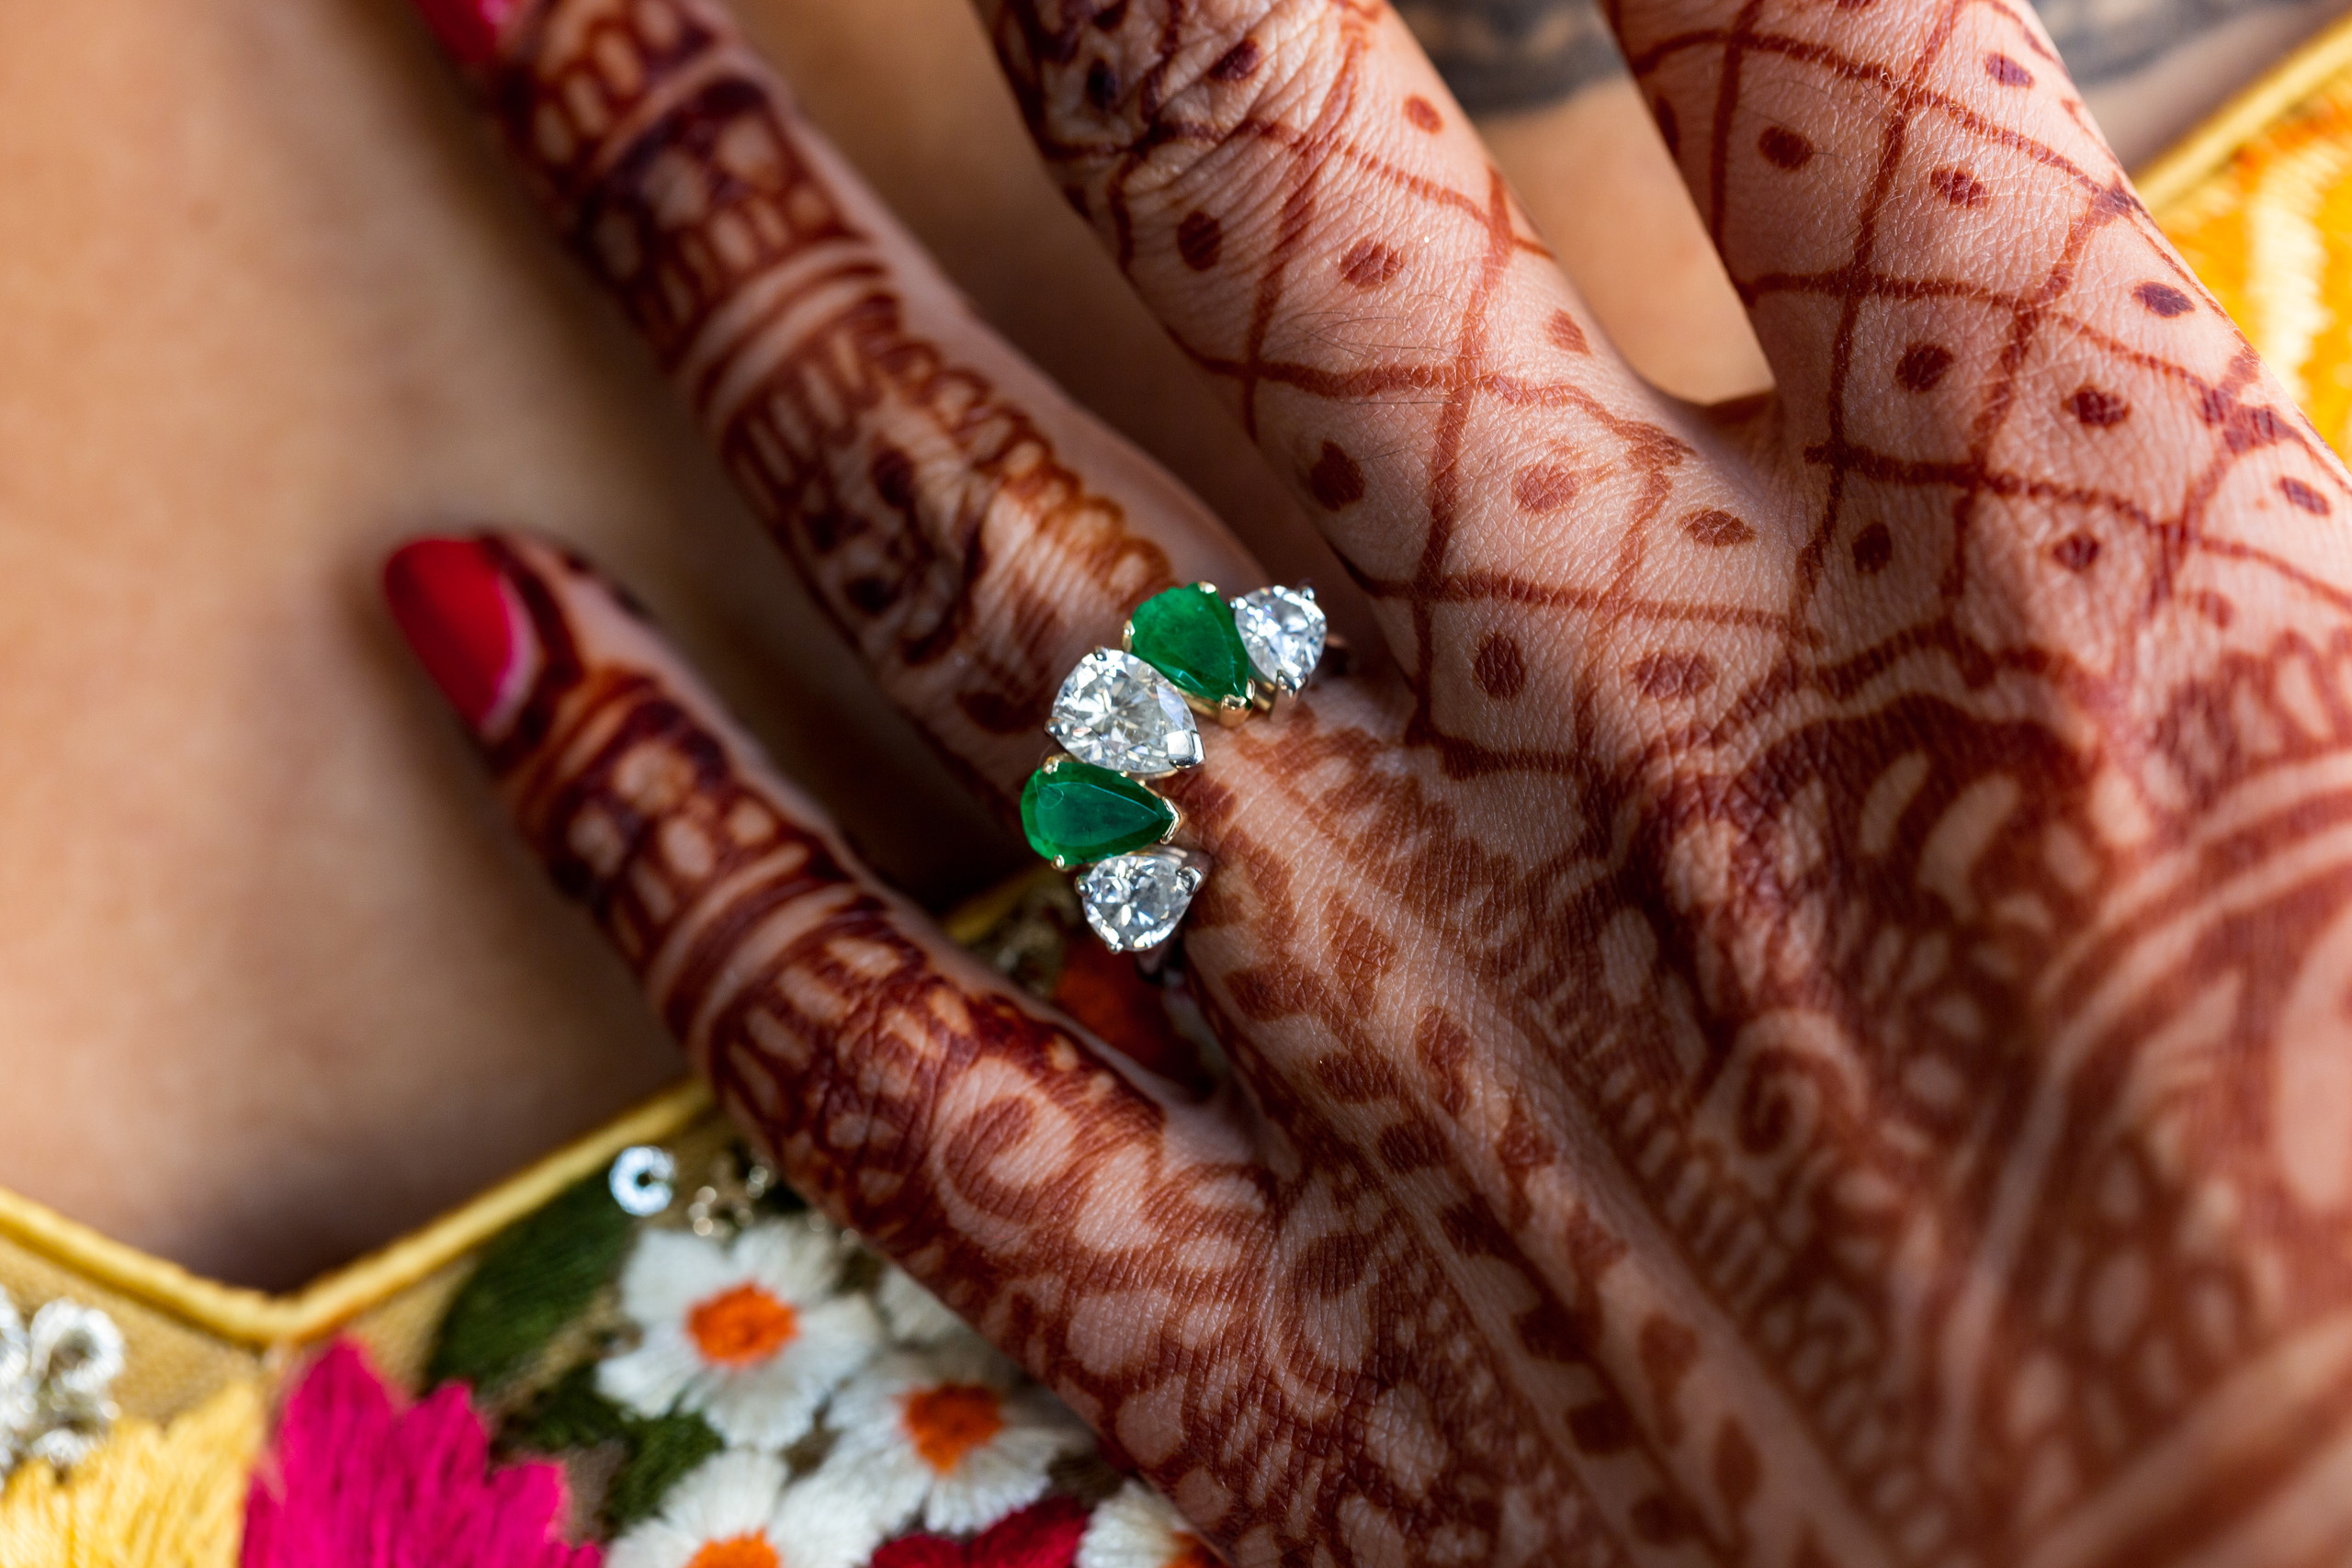 The bride's jade and diamond wedding right with her henna tattoo before the wedding ceremony at the Penn Museum in Philadelphia, Pennsylvania.